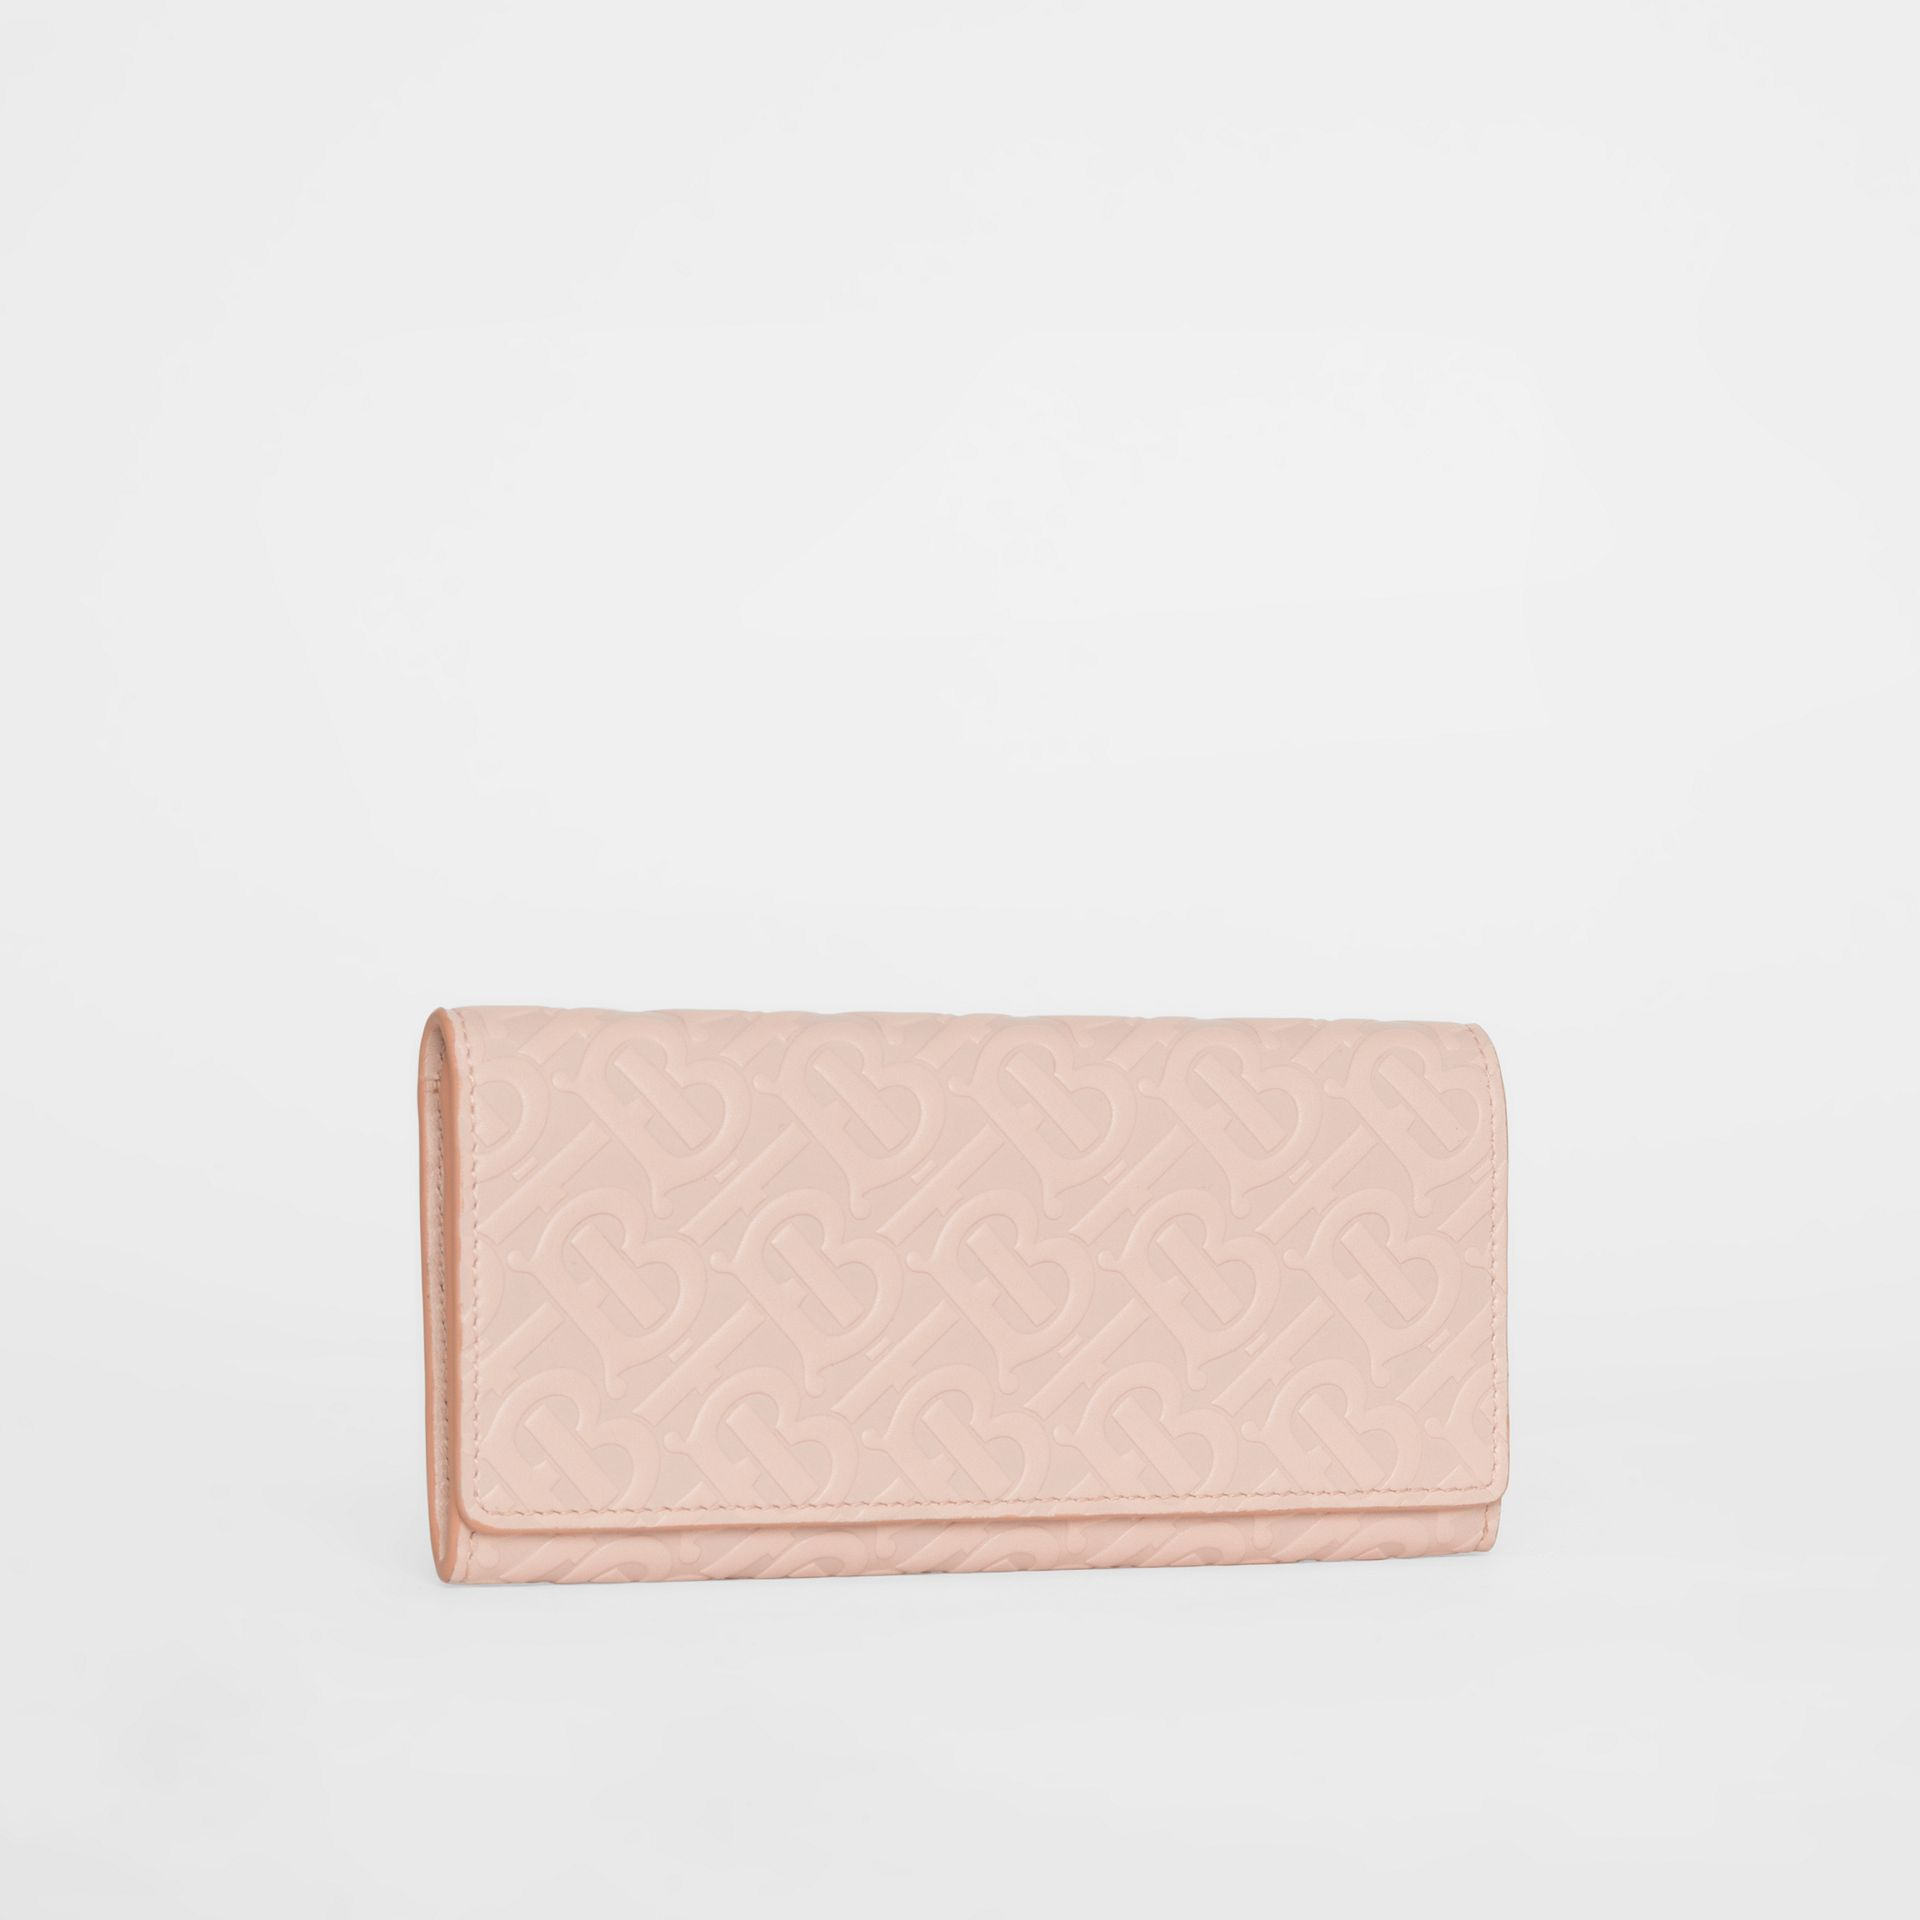 Monogram Leather Continental Wallet in Rose Beige - Women | Burberry - gallery image 4